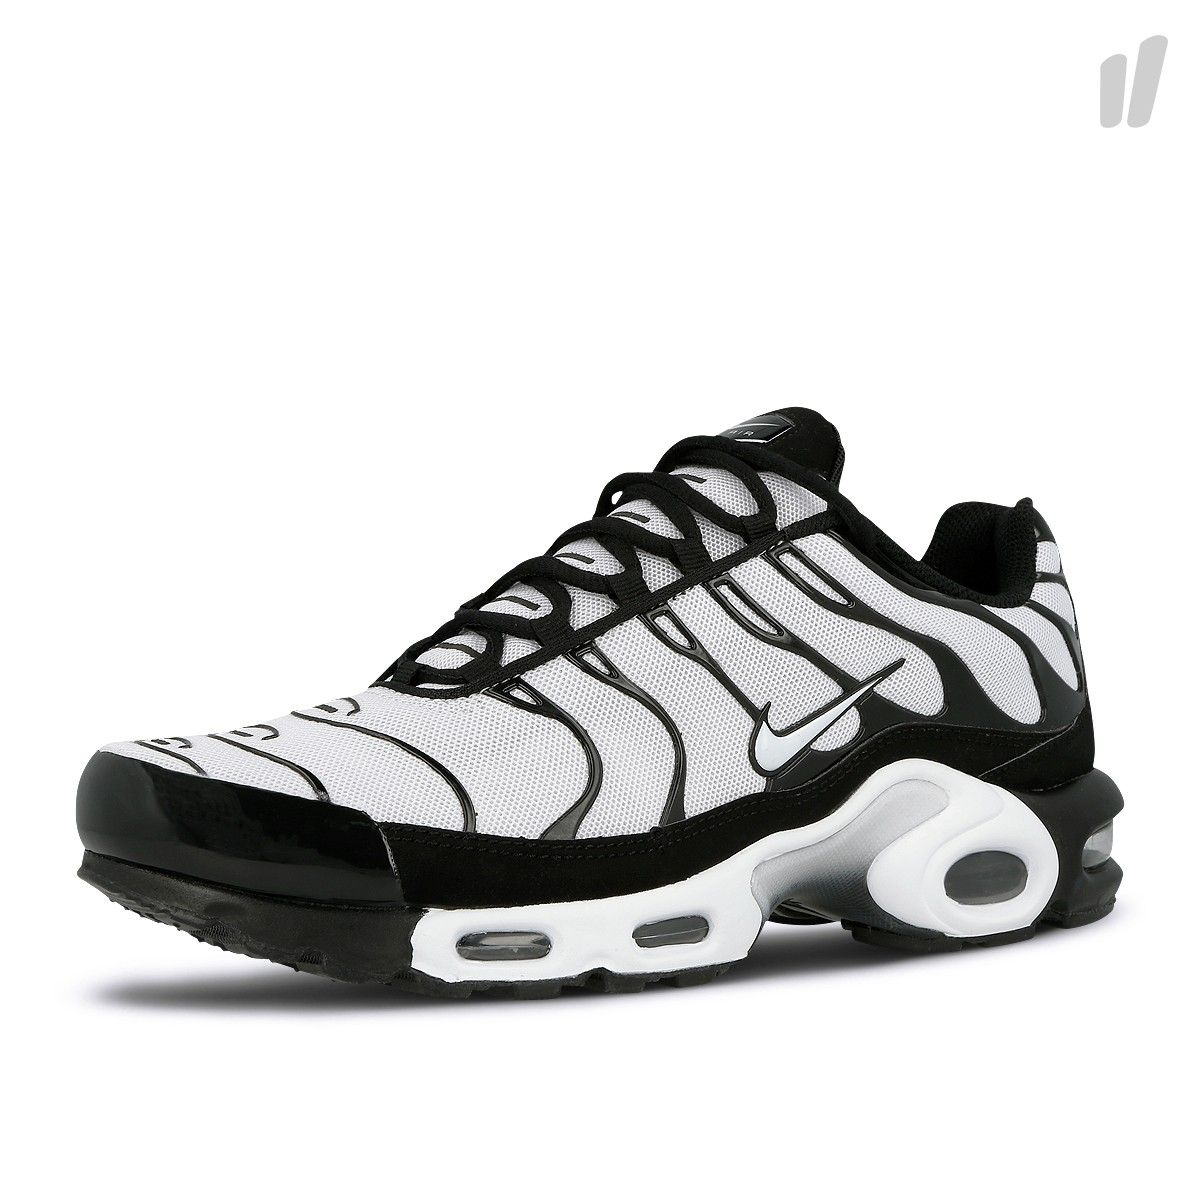 Nike Air Max Plus (Oreo) in 2020 | Nike air max plus, Nike